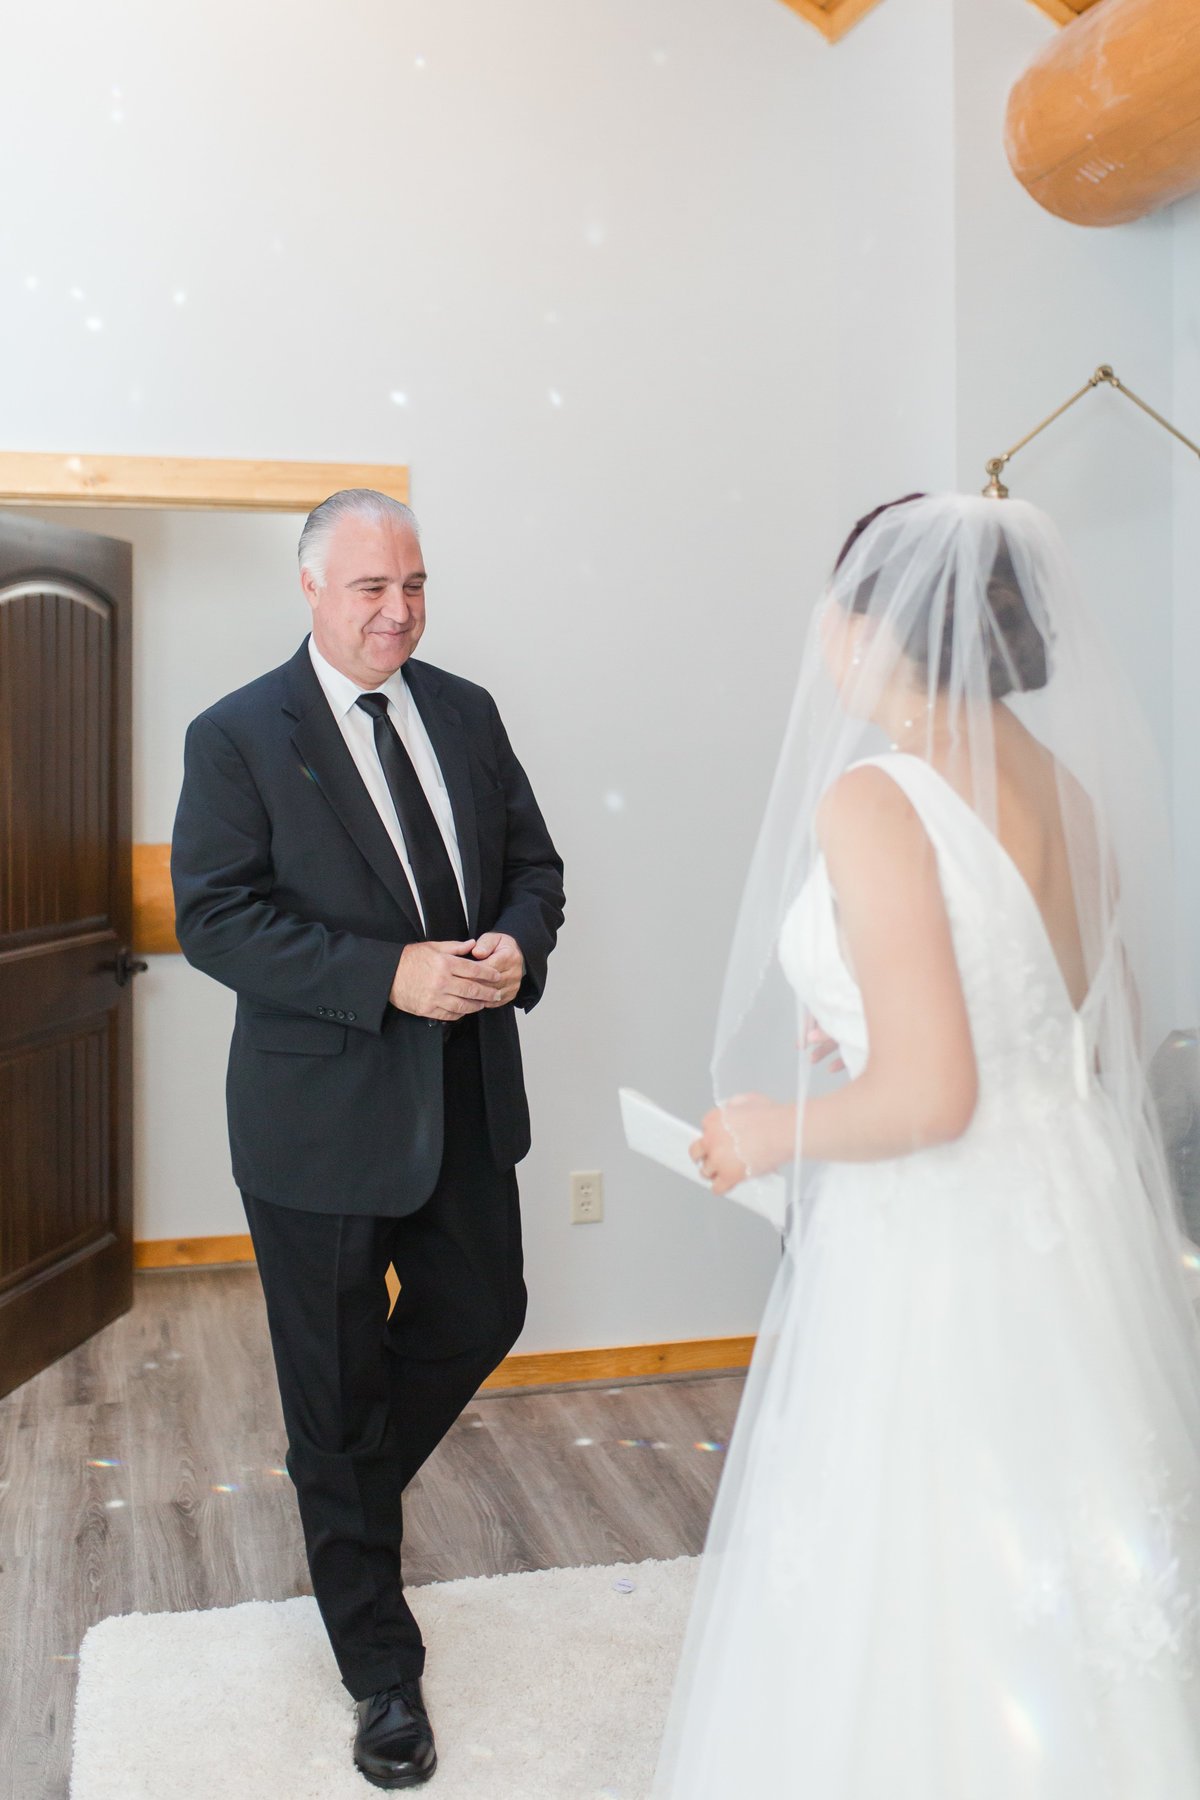 HYP_Kristina_and_Benedikt_Wedding_0030